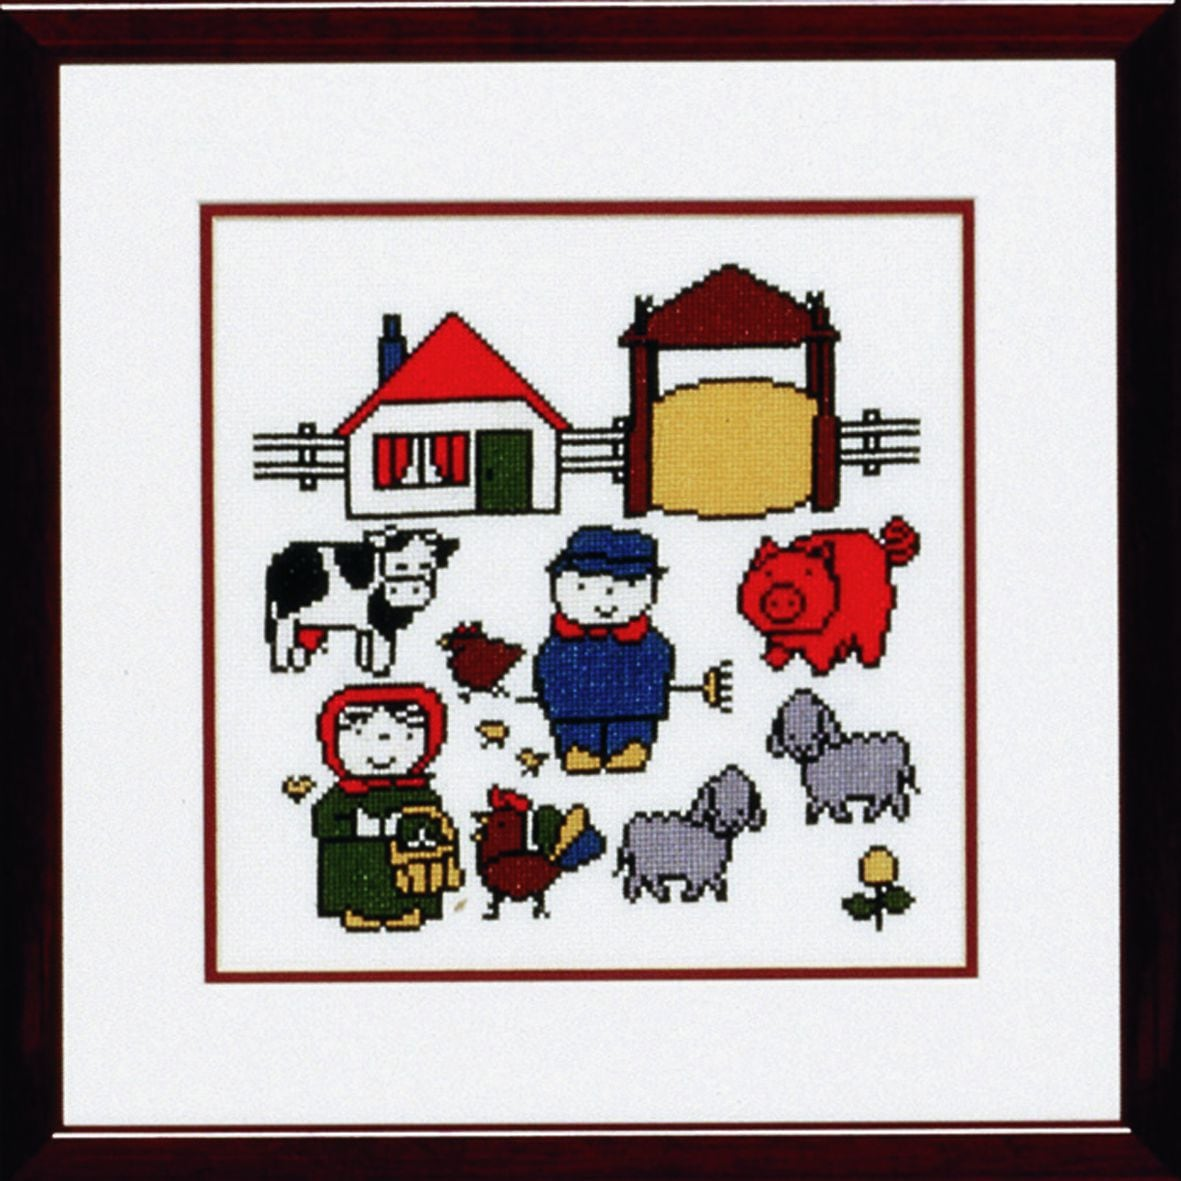 embroidery kit the farm dick bruna